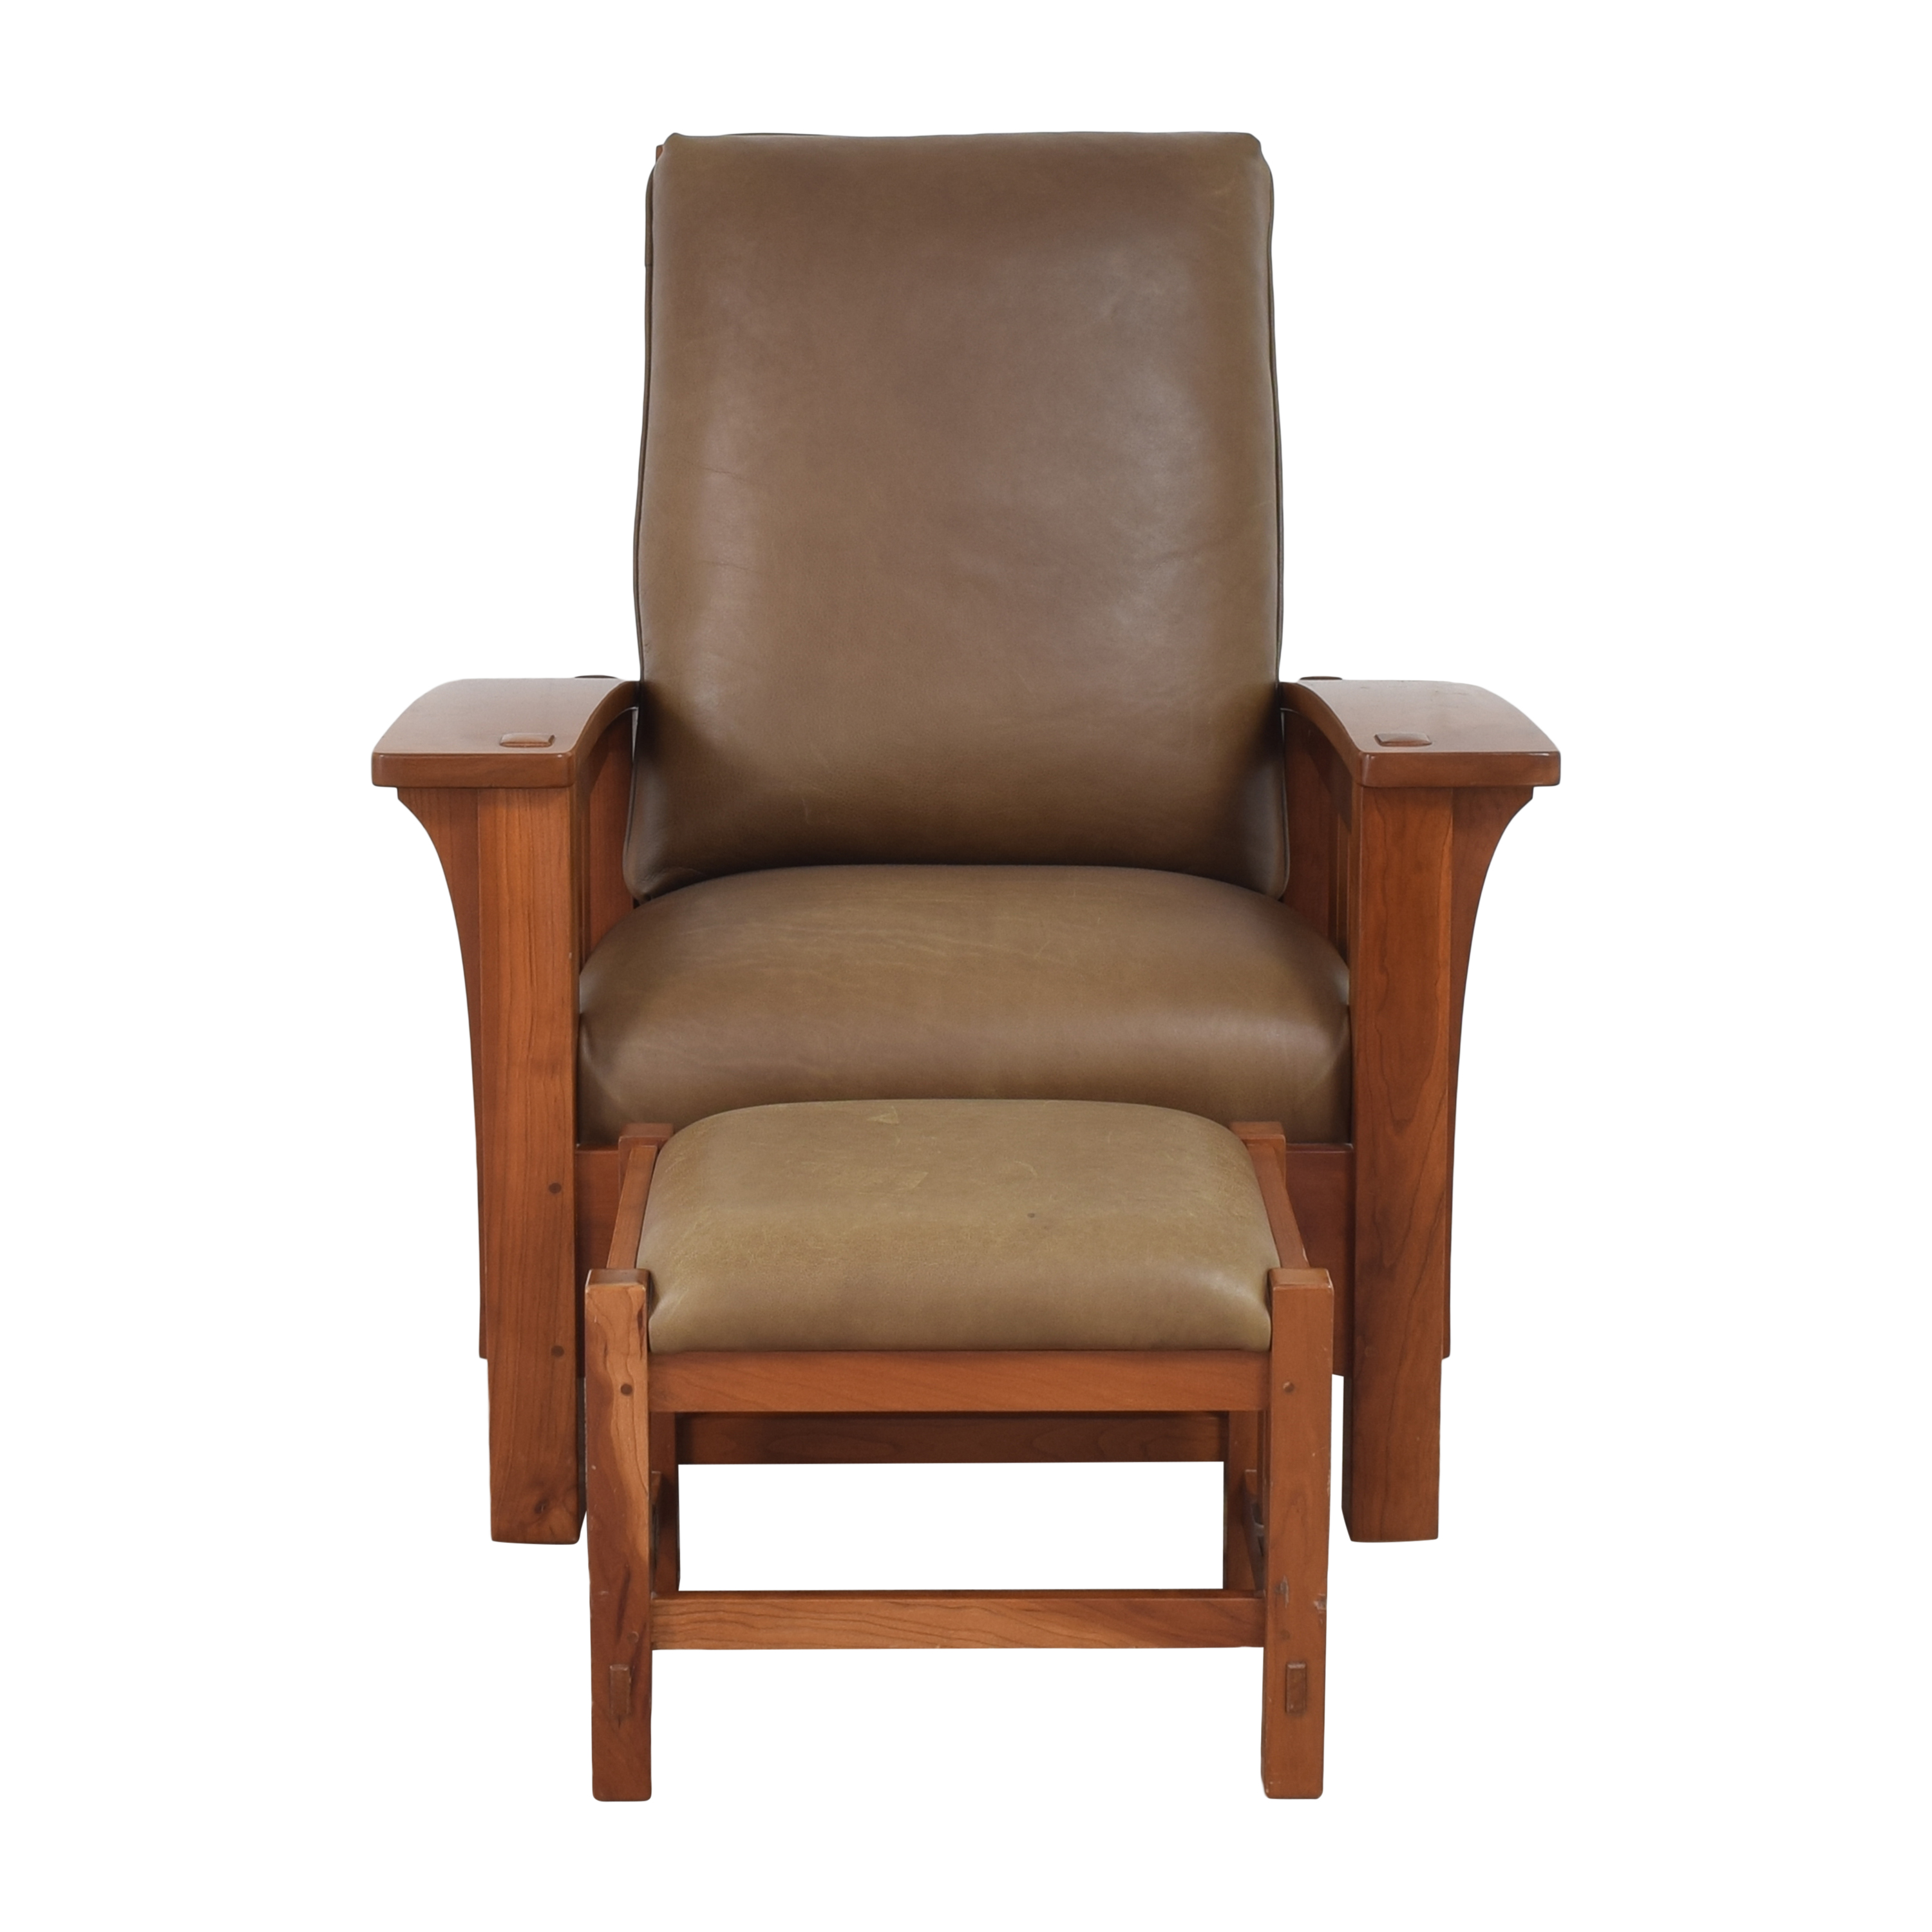 shop Stickley Mission Collection Bow Arm Morris Chair with Ottoman Stickley Furniture Recliners